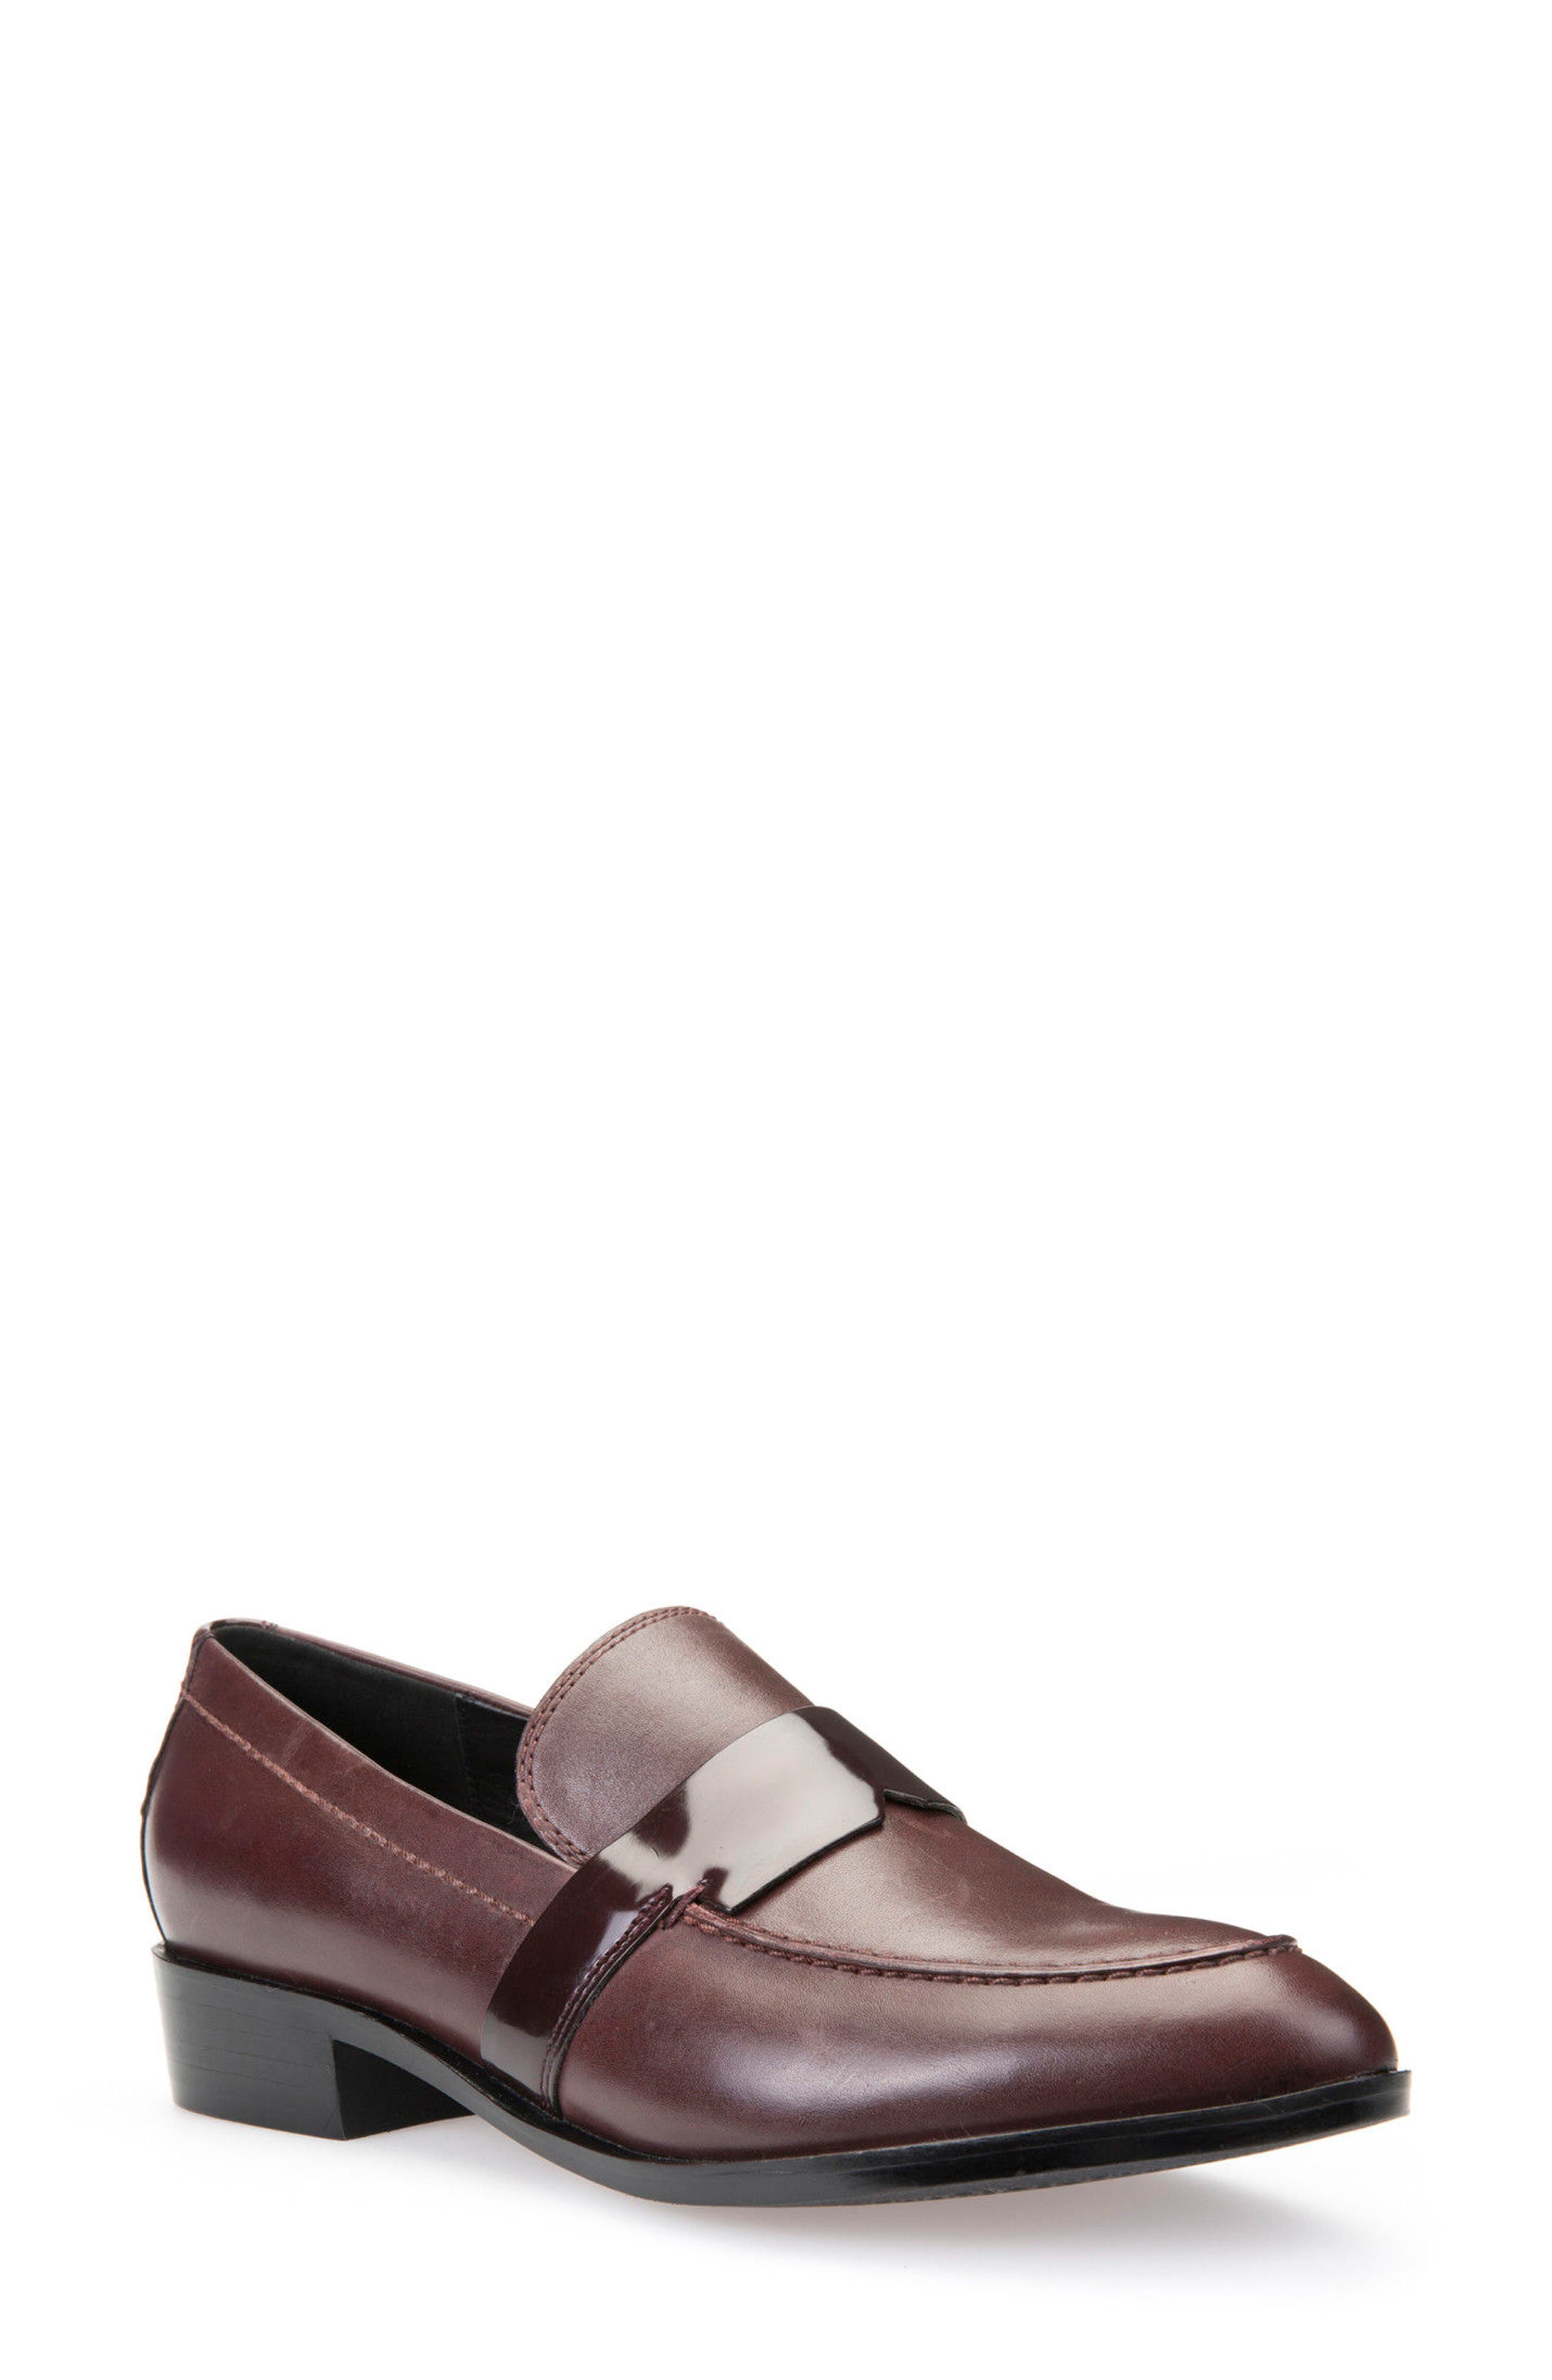 Lover Loafer,                             Main thumbnail 1, color,